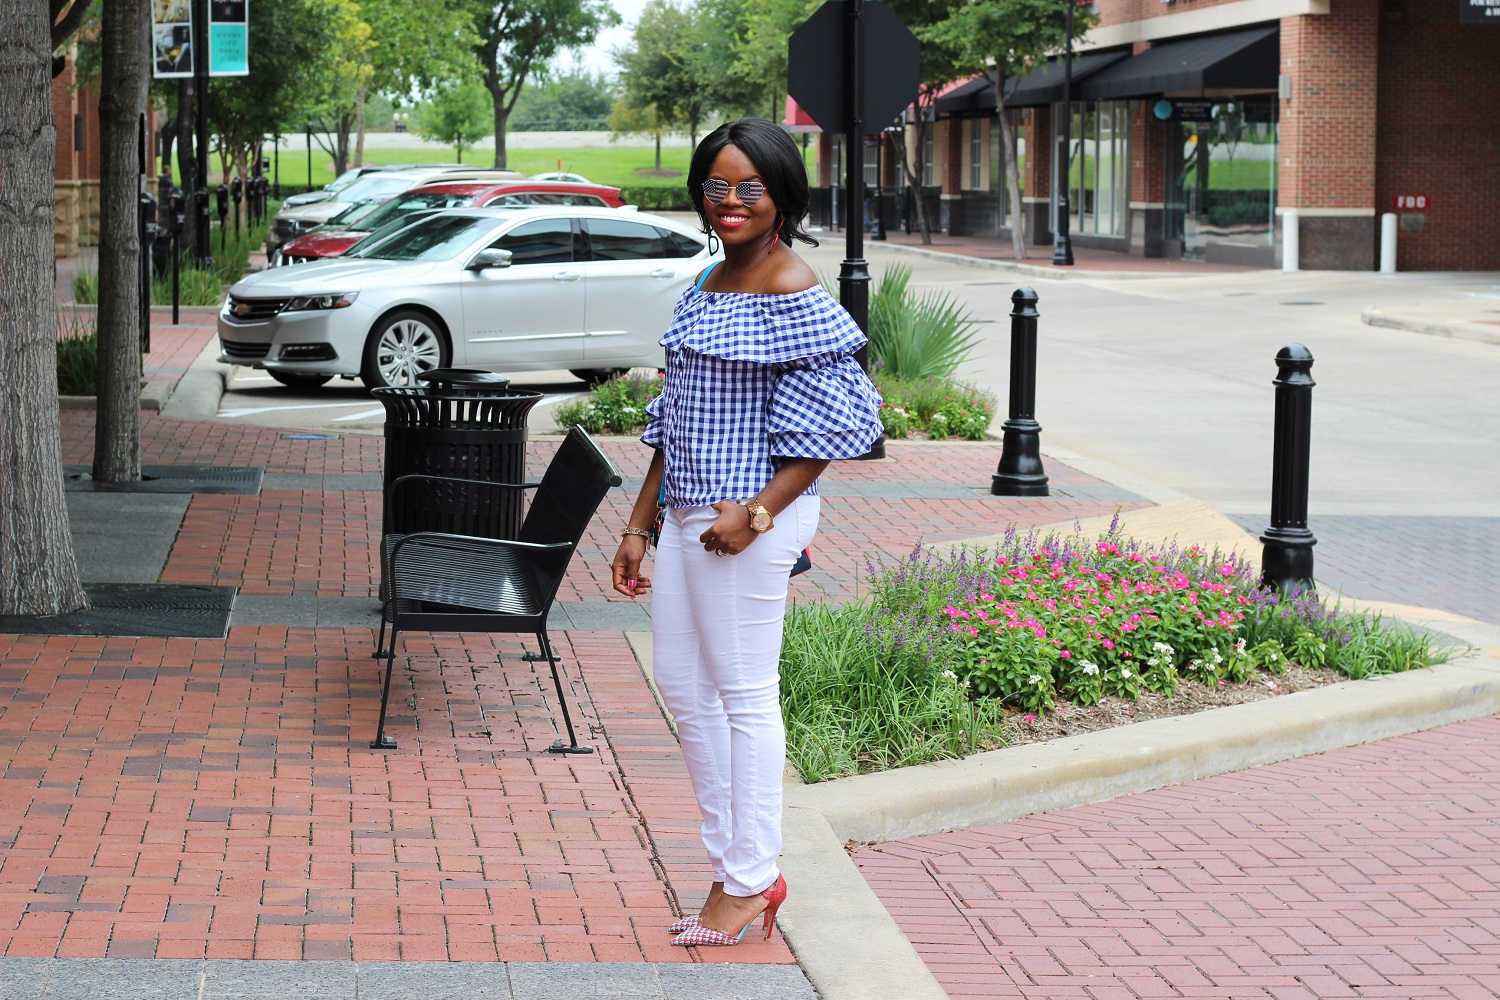 Red Shoes, White Pants and Blue Gingham A'GACI Off Shoulder Ruffle Top Statement Sleeves Macy's White Skinny Denim Jeans Heart Print Shoes Shoedazzle Colorblock Red Blue Handbag Impress by Enny July 4th Independence Day Look American Flag Heart Shape Sunglasses